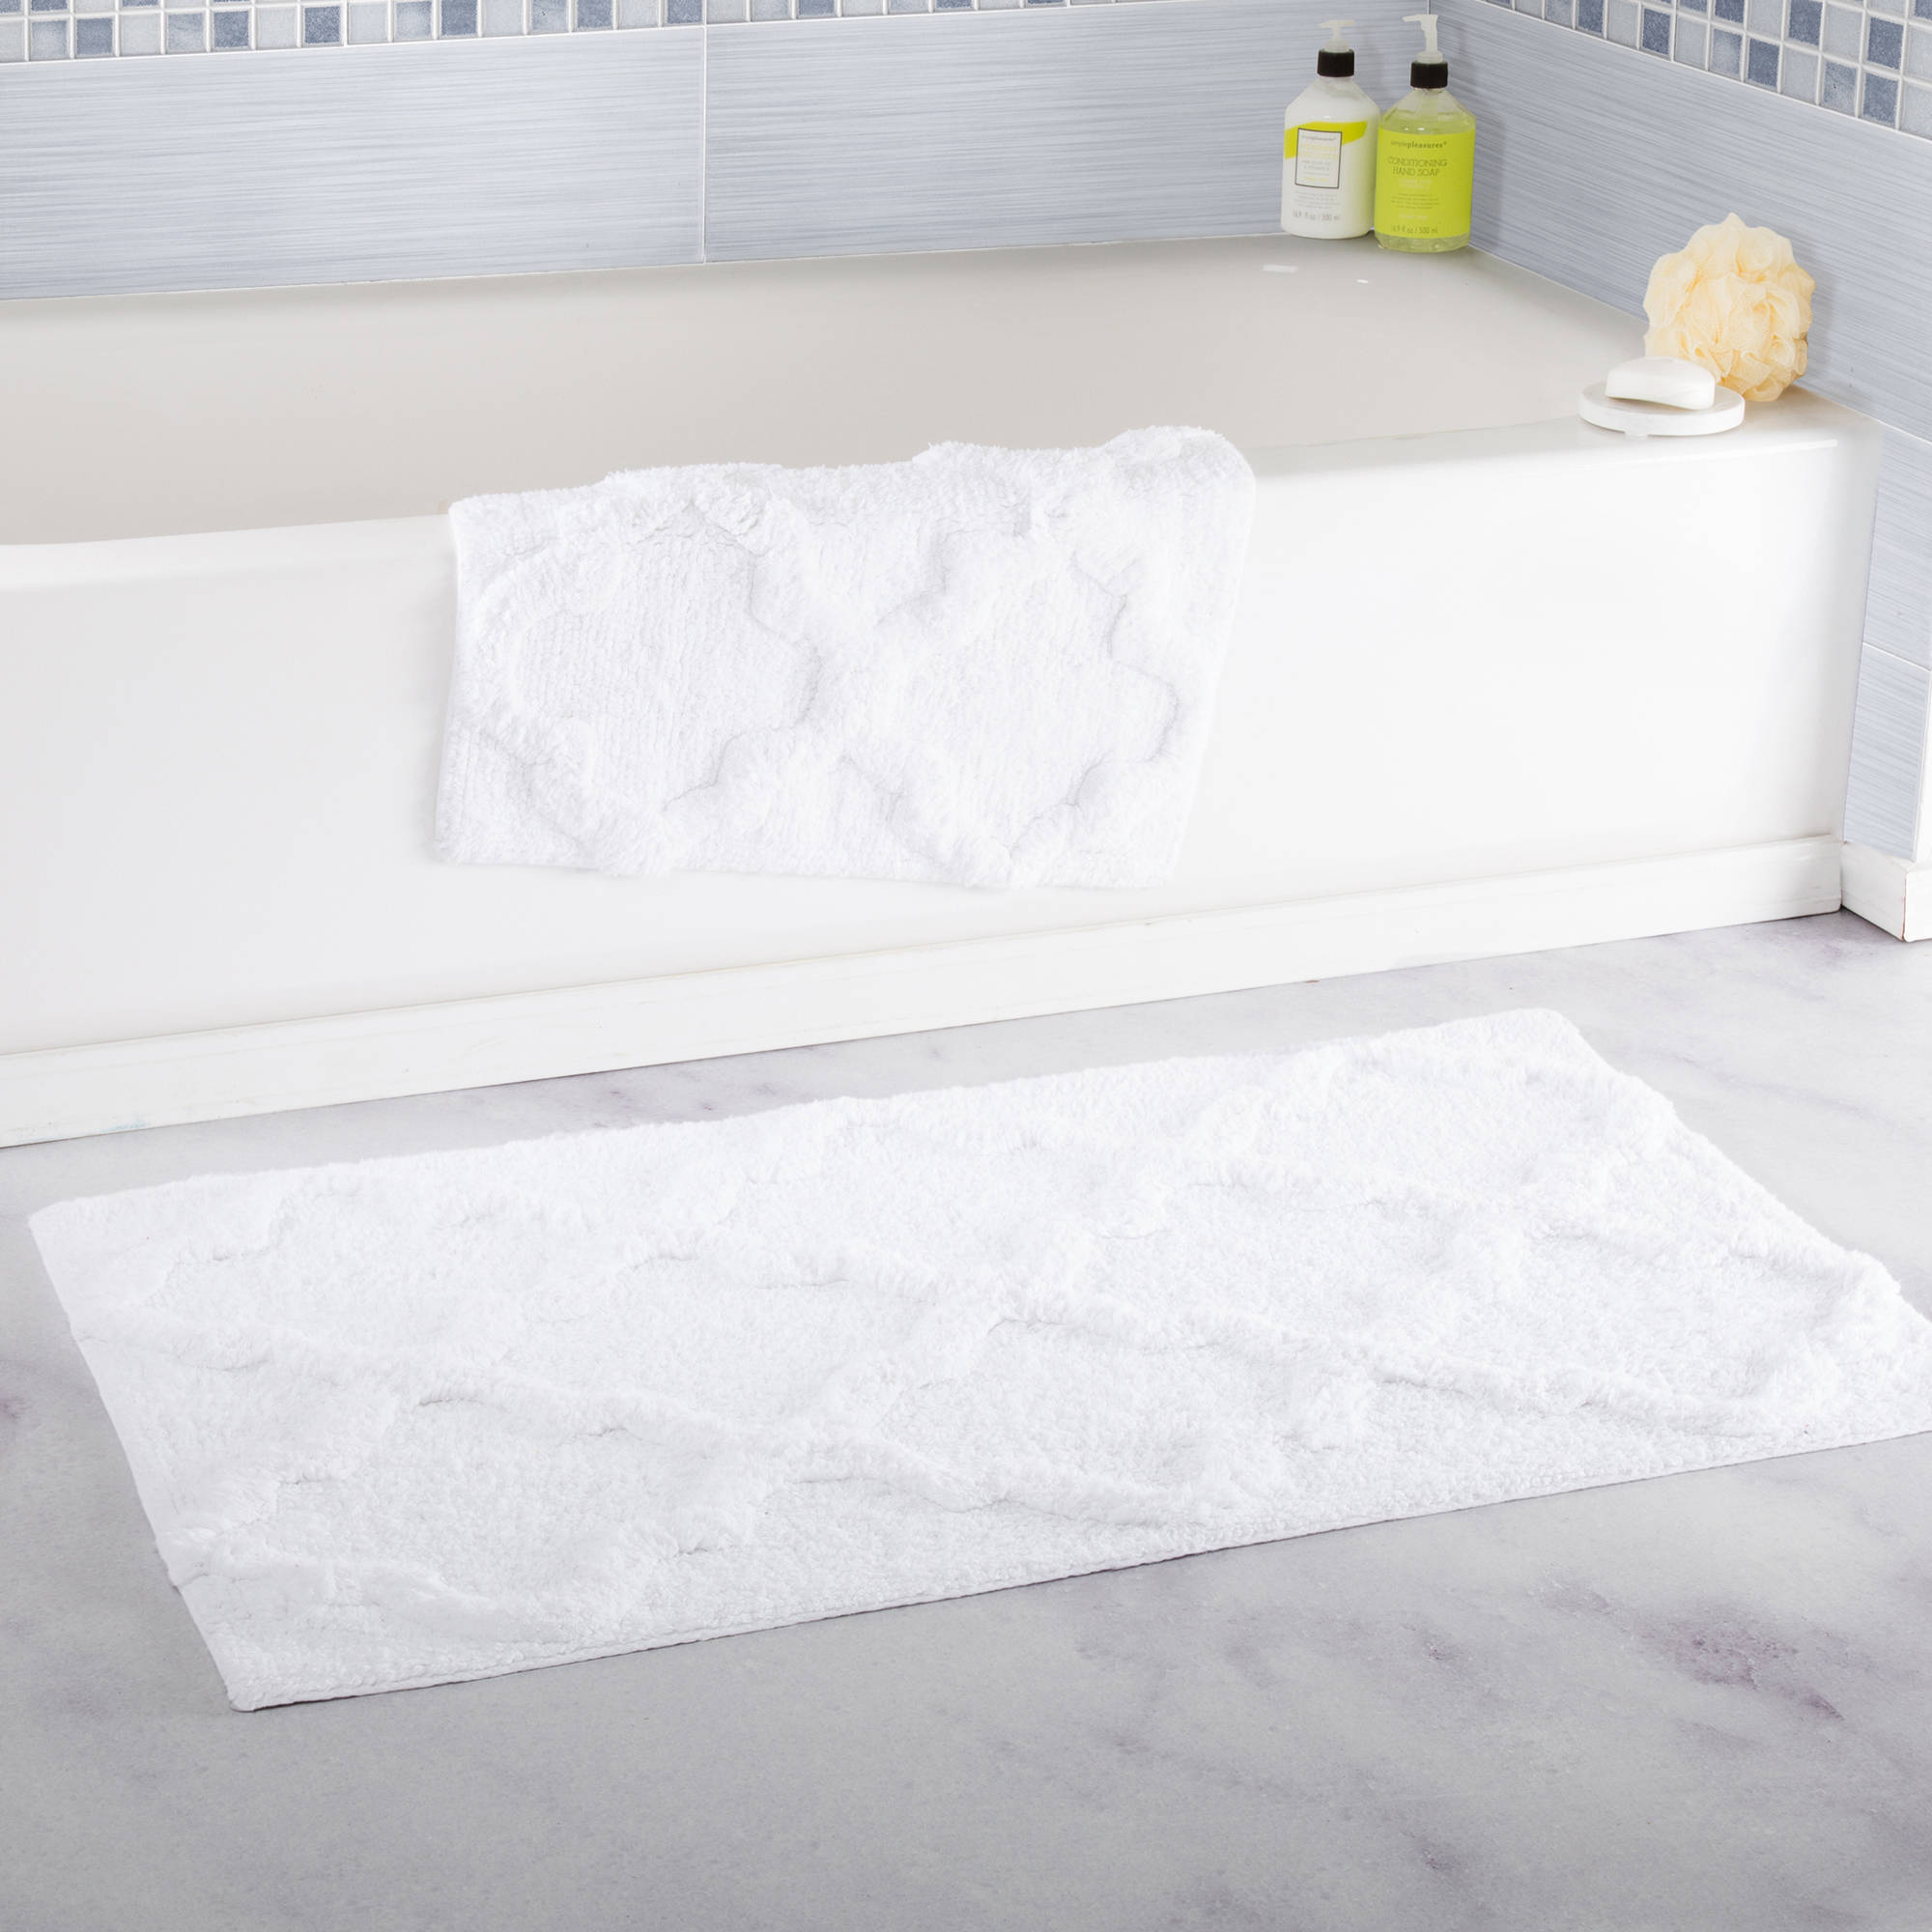 Somerset Home 100% Cotton 2-Piece Trellis Bathroom Mat Set - White